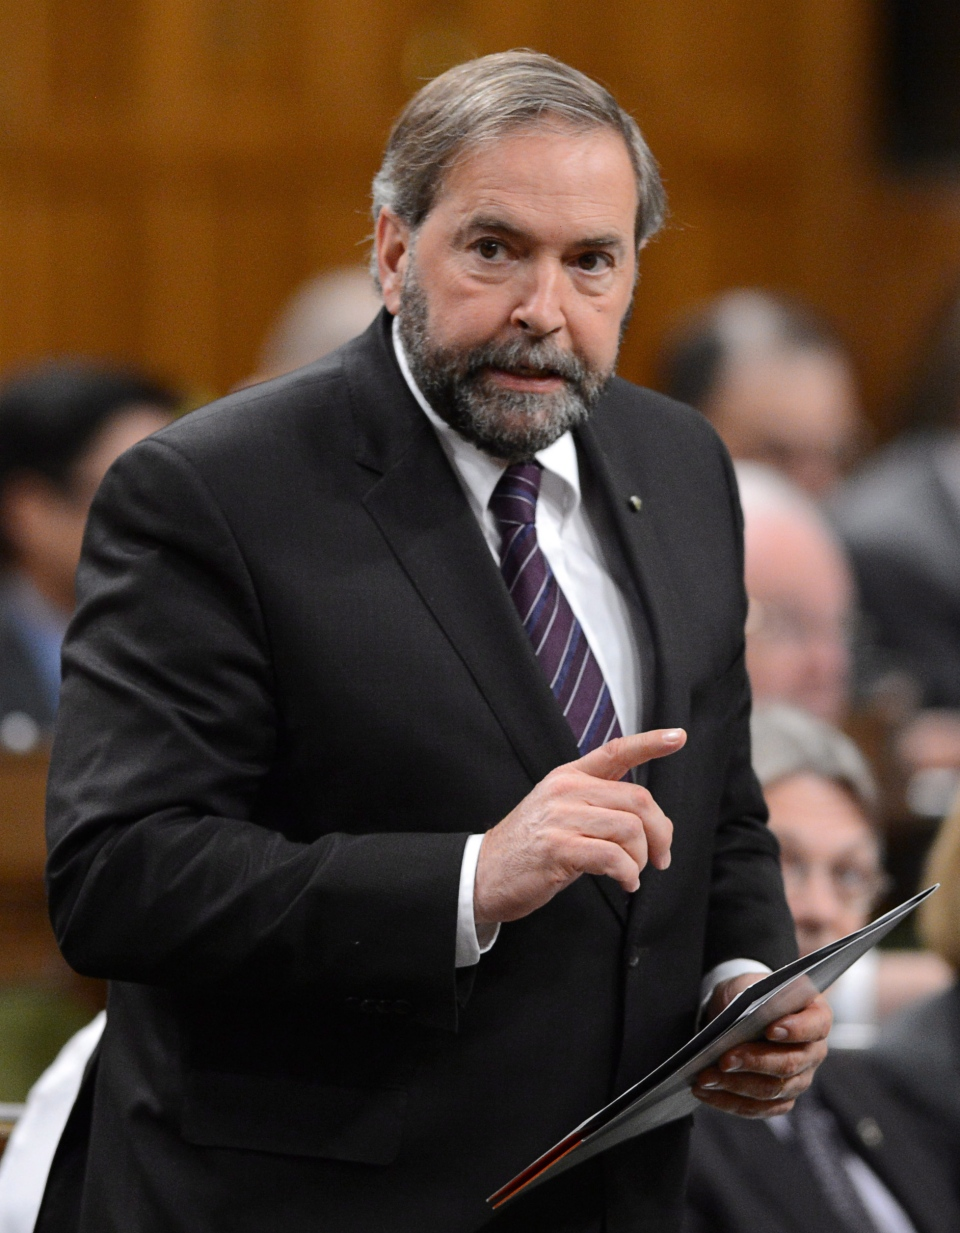 NDP leader Tom Mulcair asks a question during question period in the House of Commons on Parliament Hill in Ottawa on Monday, June 10, 2013. (Sean Kilpatrick / THE CANADIAN PRESS)